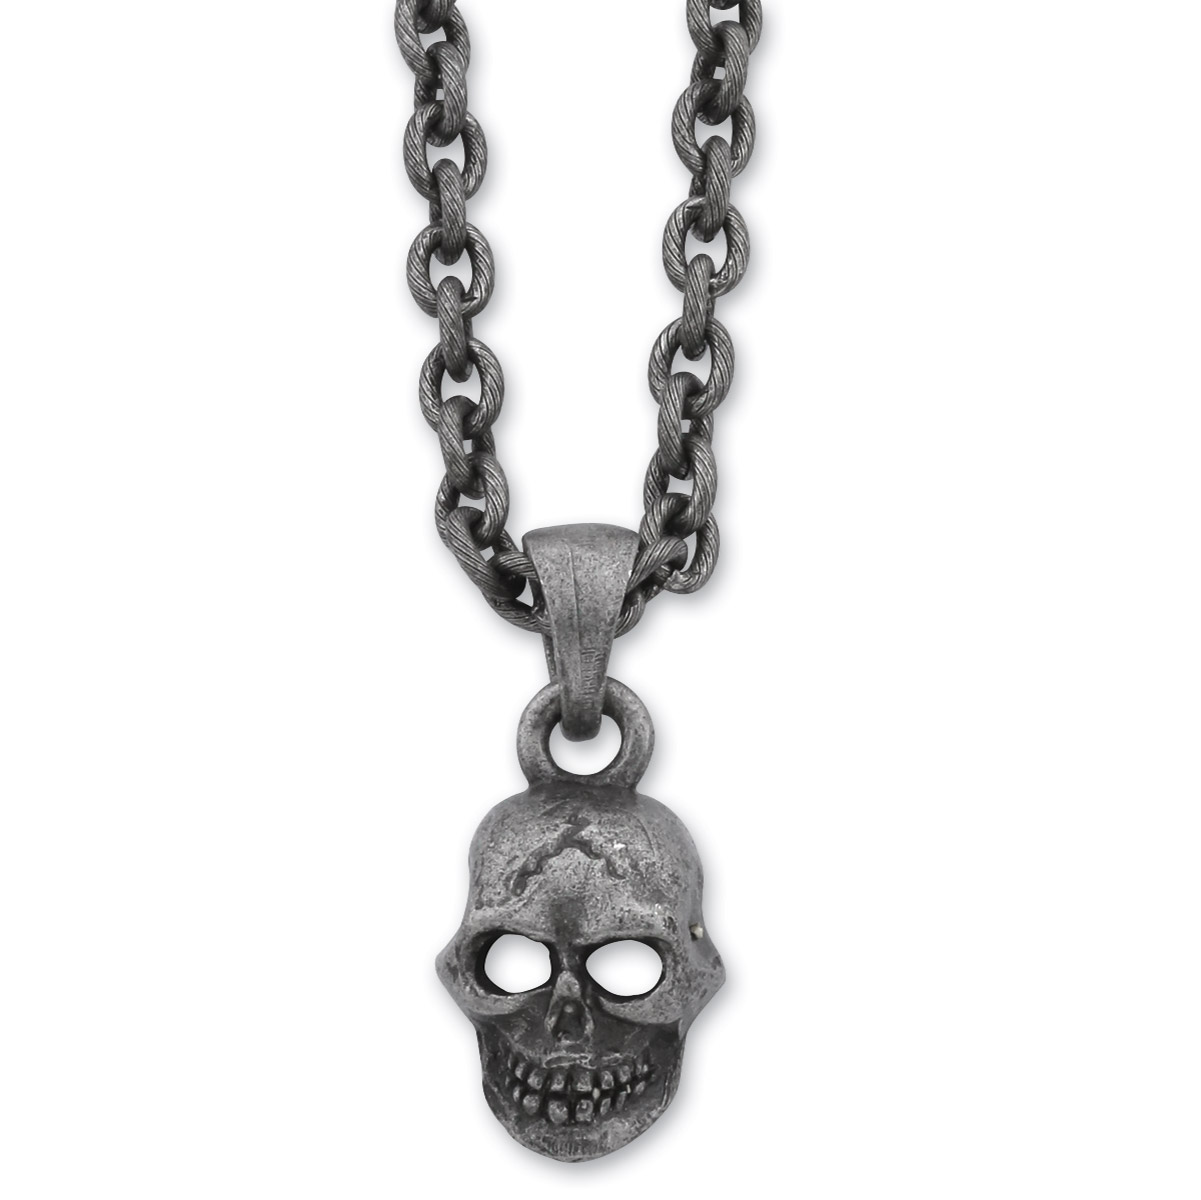 AMiGAZ Small Hack Necklace w/Skull XL